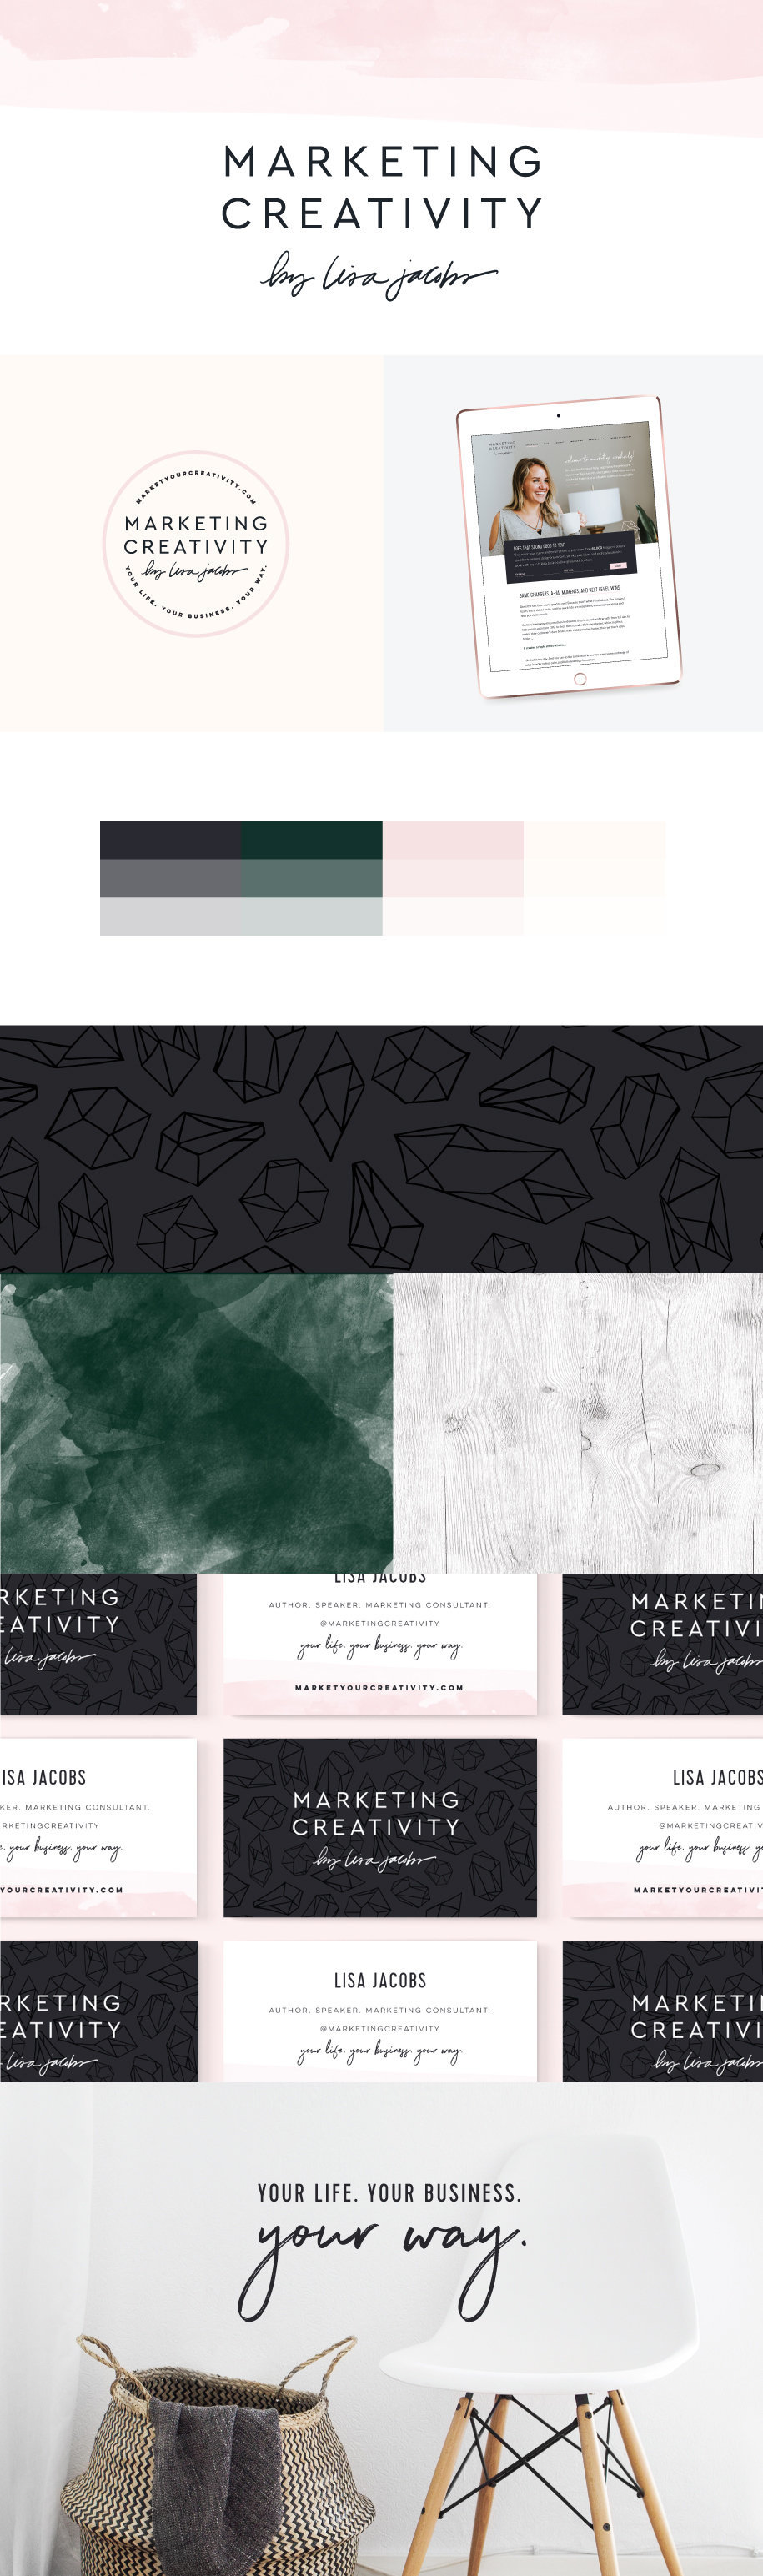 marketing-creativity-branding